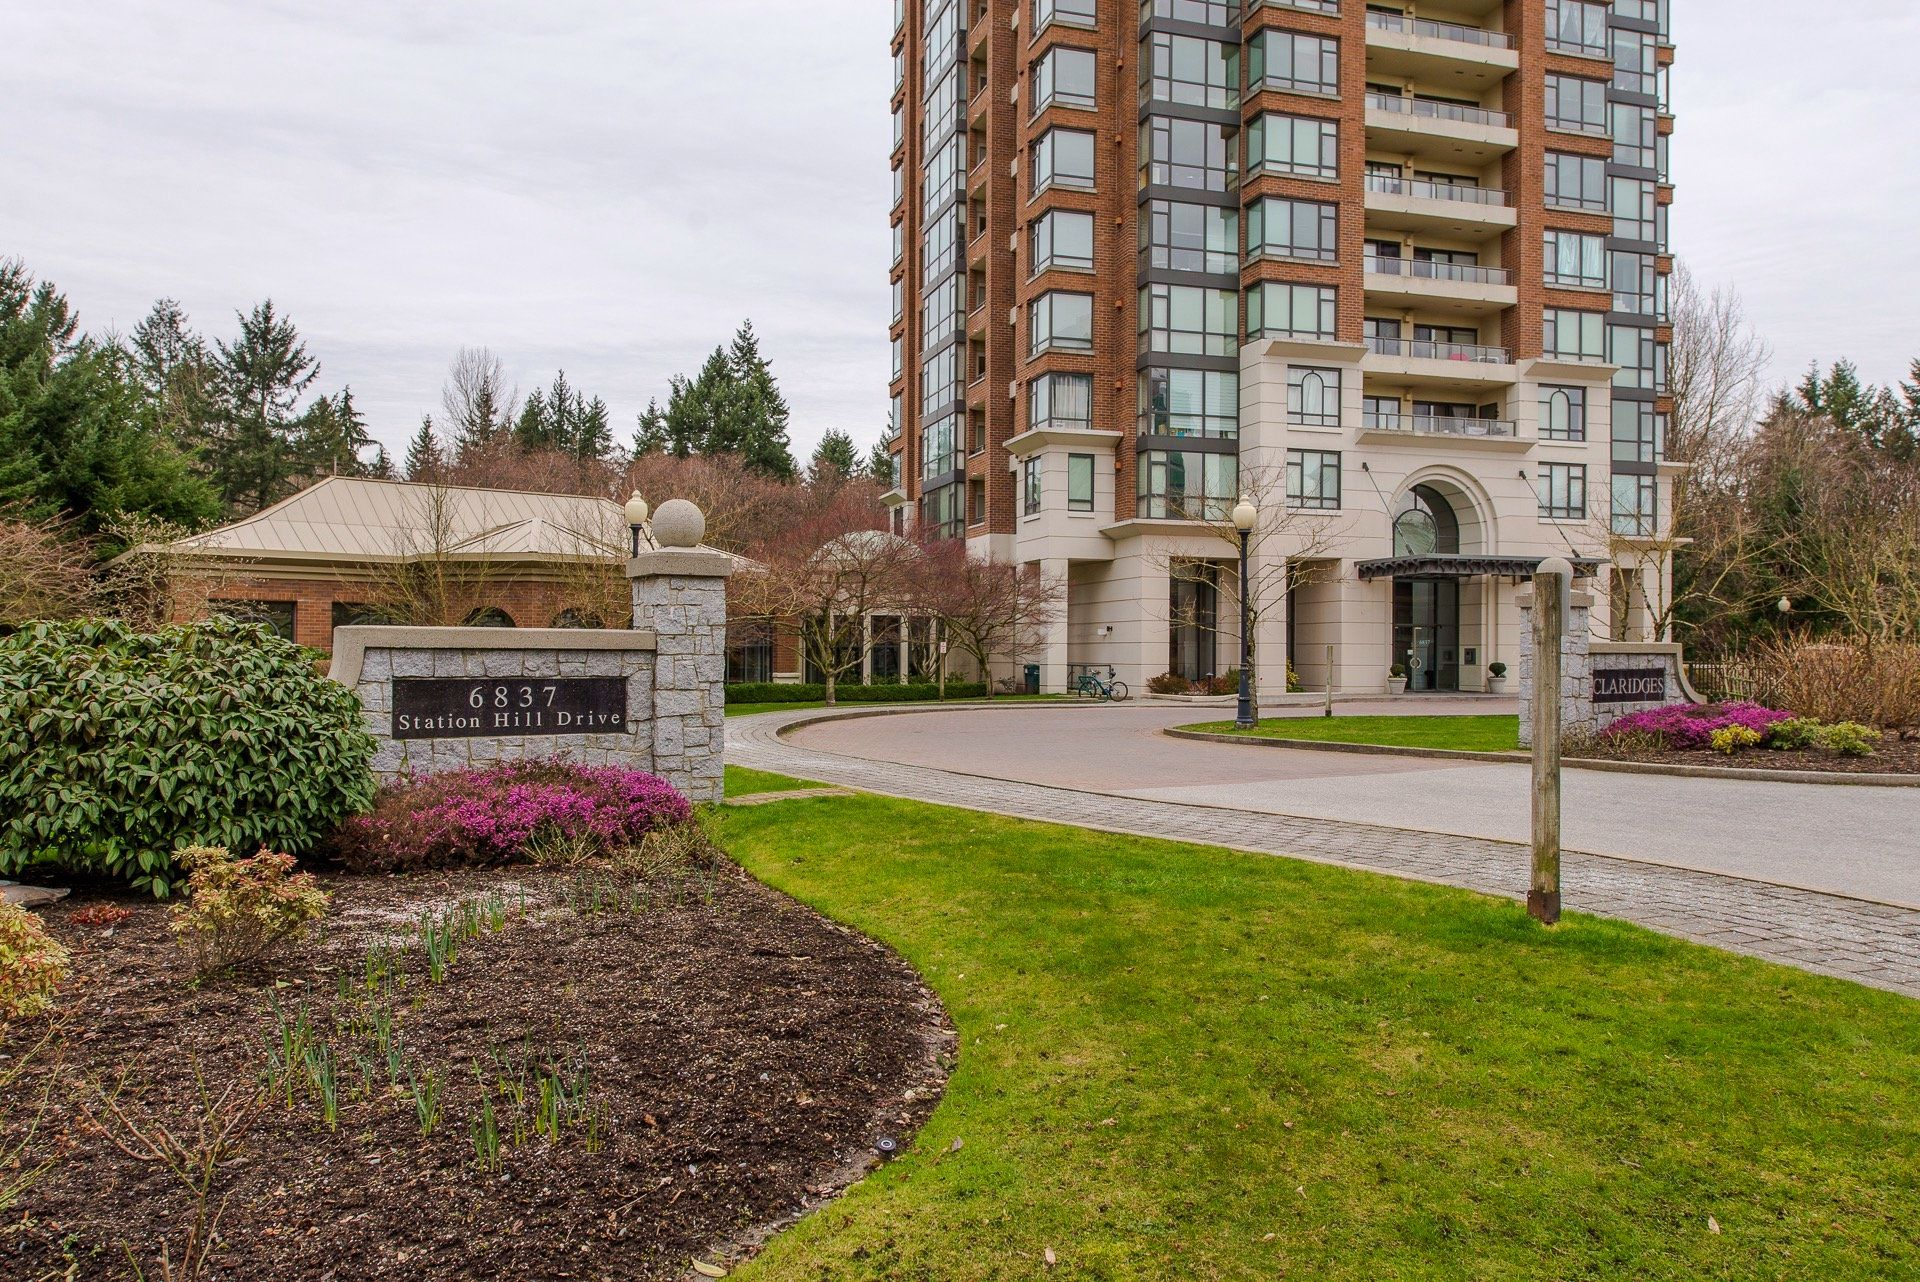 "Main Photo: 801 6837 STATION HILL Drive in Burnaby: South Slope Condo for sale in ""Claridges"" (Burnaby South)  : MLS®# R2239068"